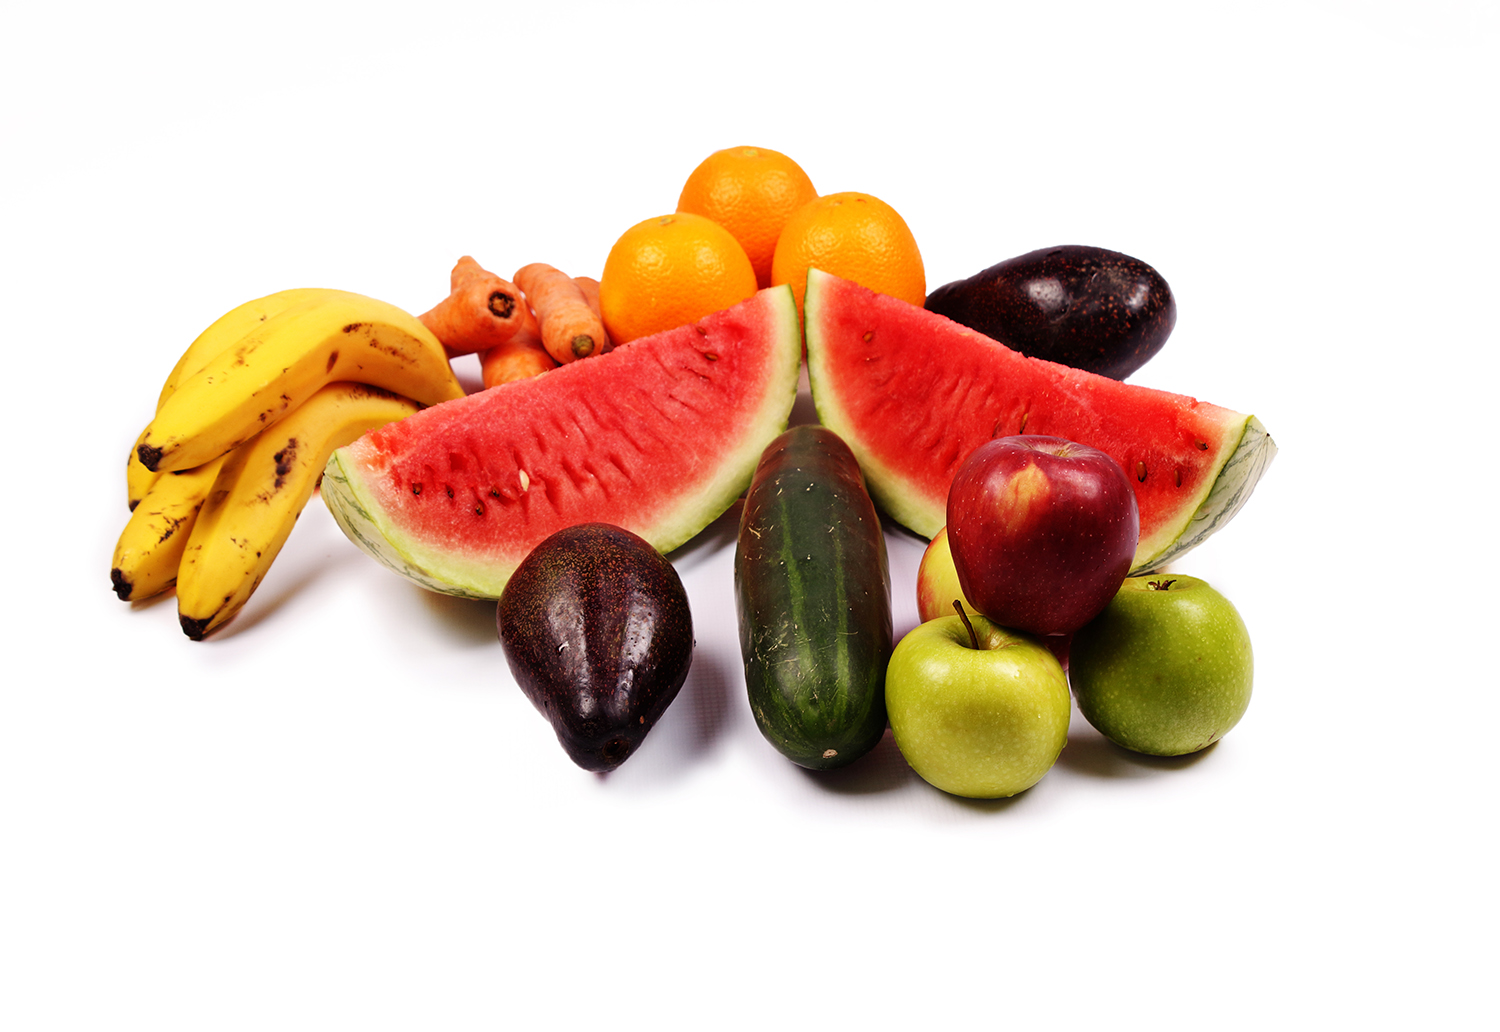 Fruits on isolated white background Bananas watermelon avocado apples carrots cucumber